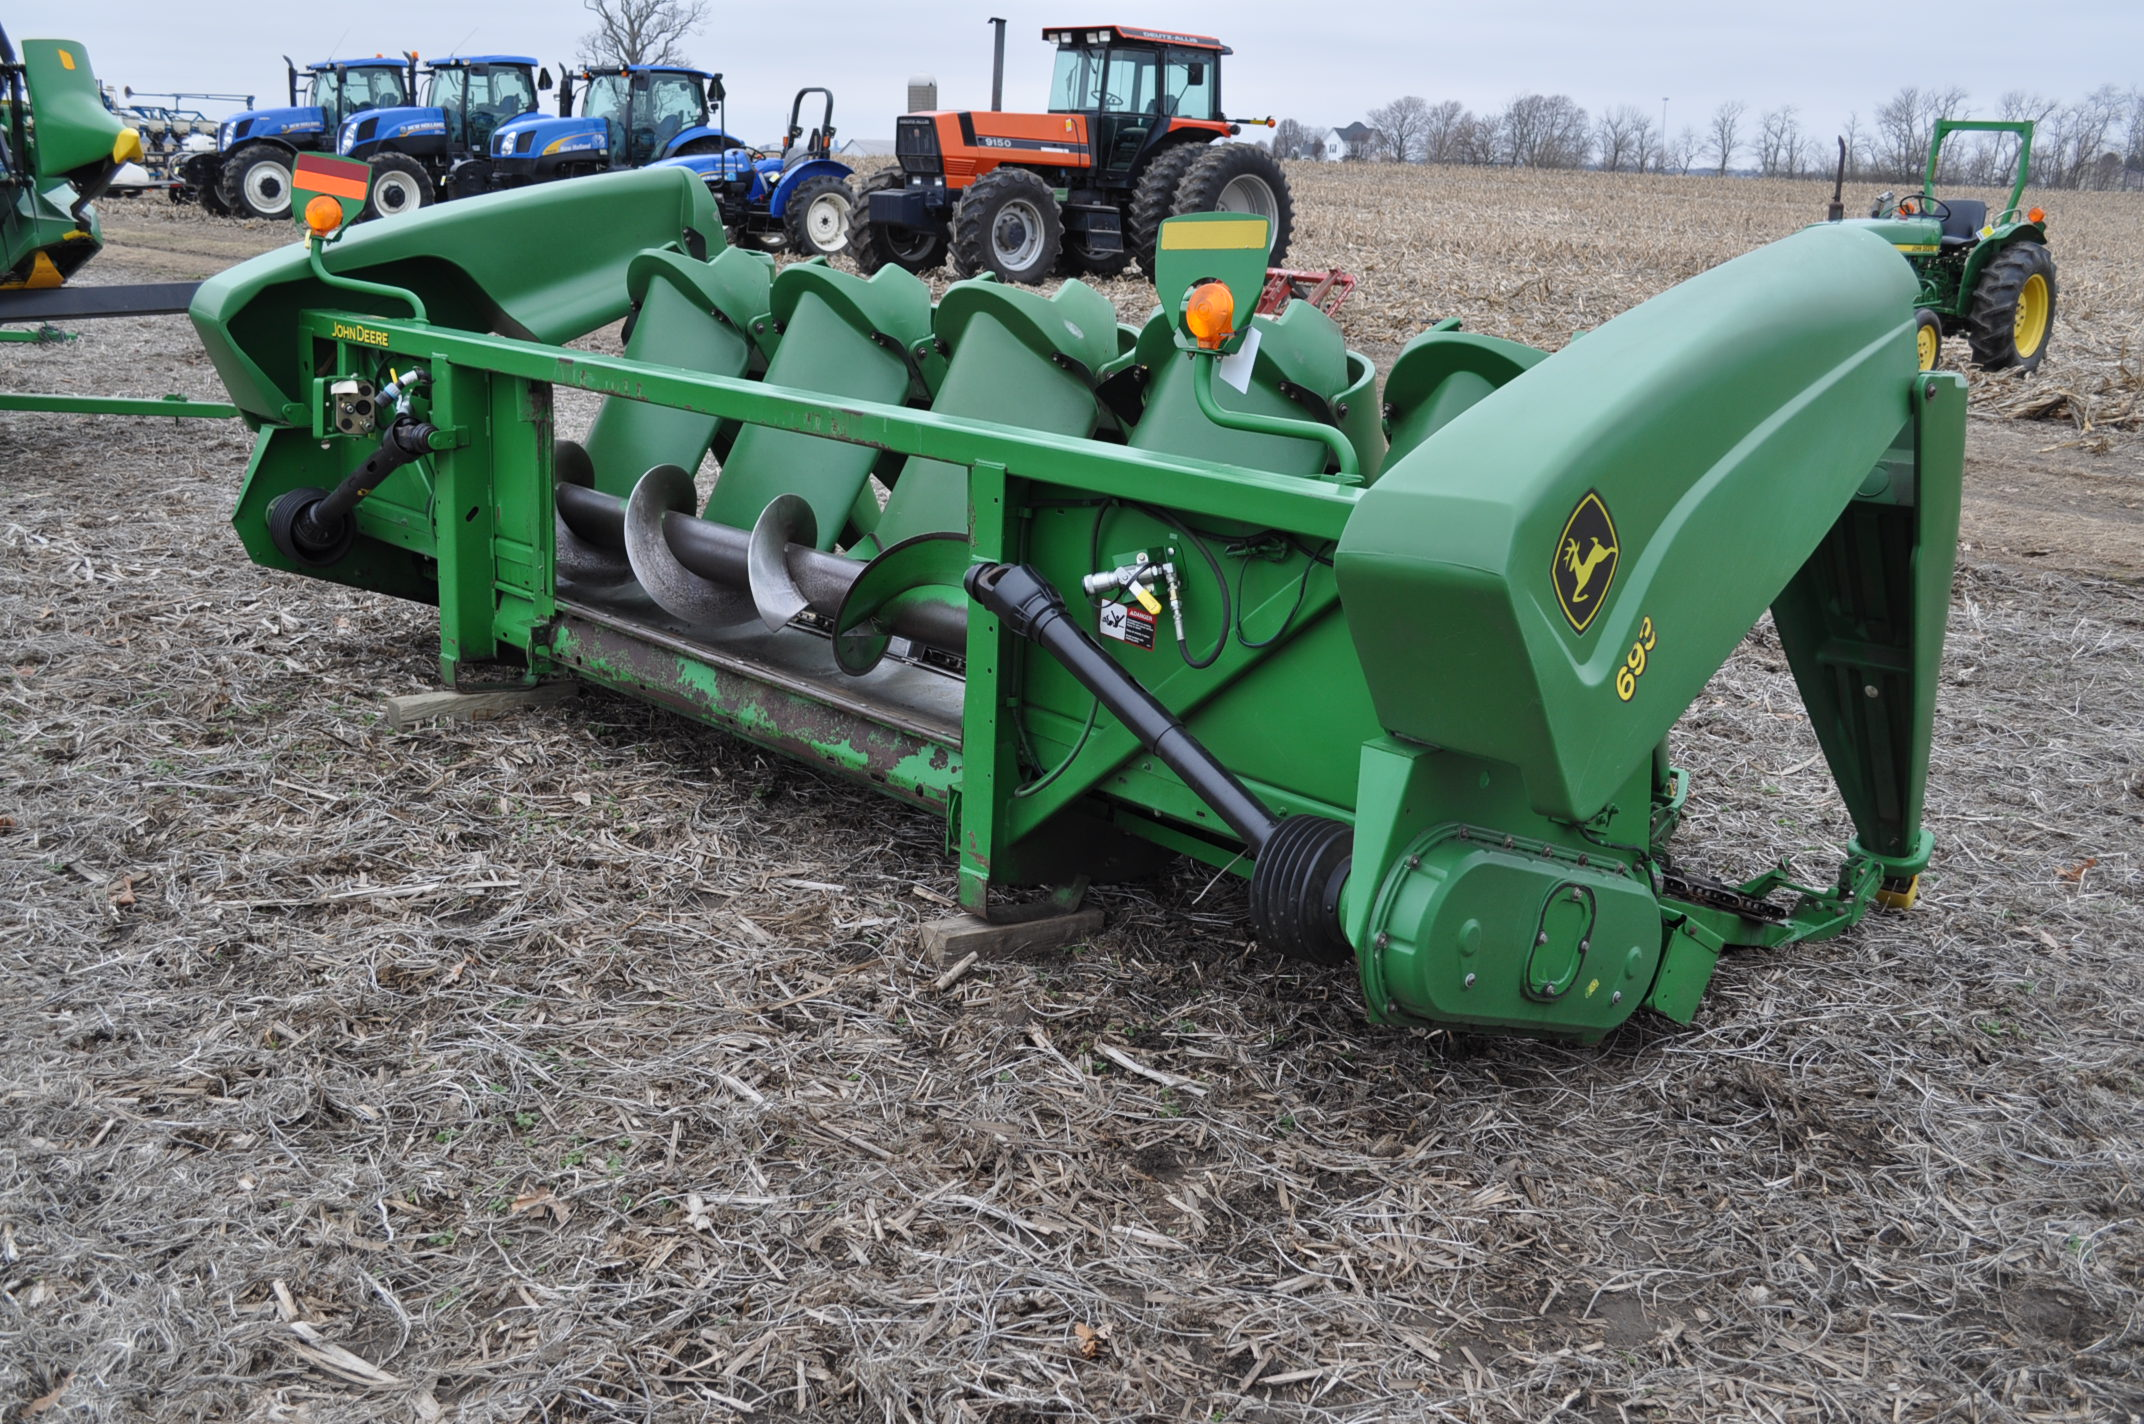 John Deere 693 corn head, poly, fluted rolls, hyd deck plates, pto shafts, SN 710815 - Image 3 of 14